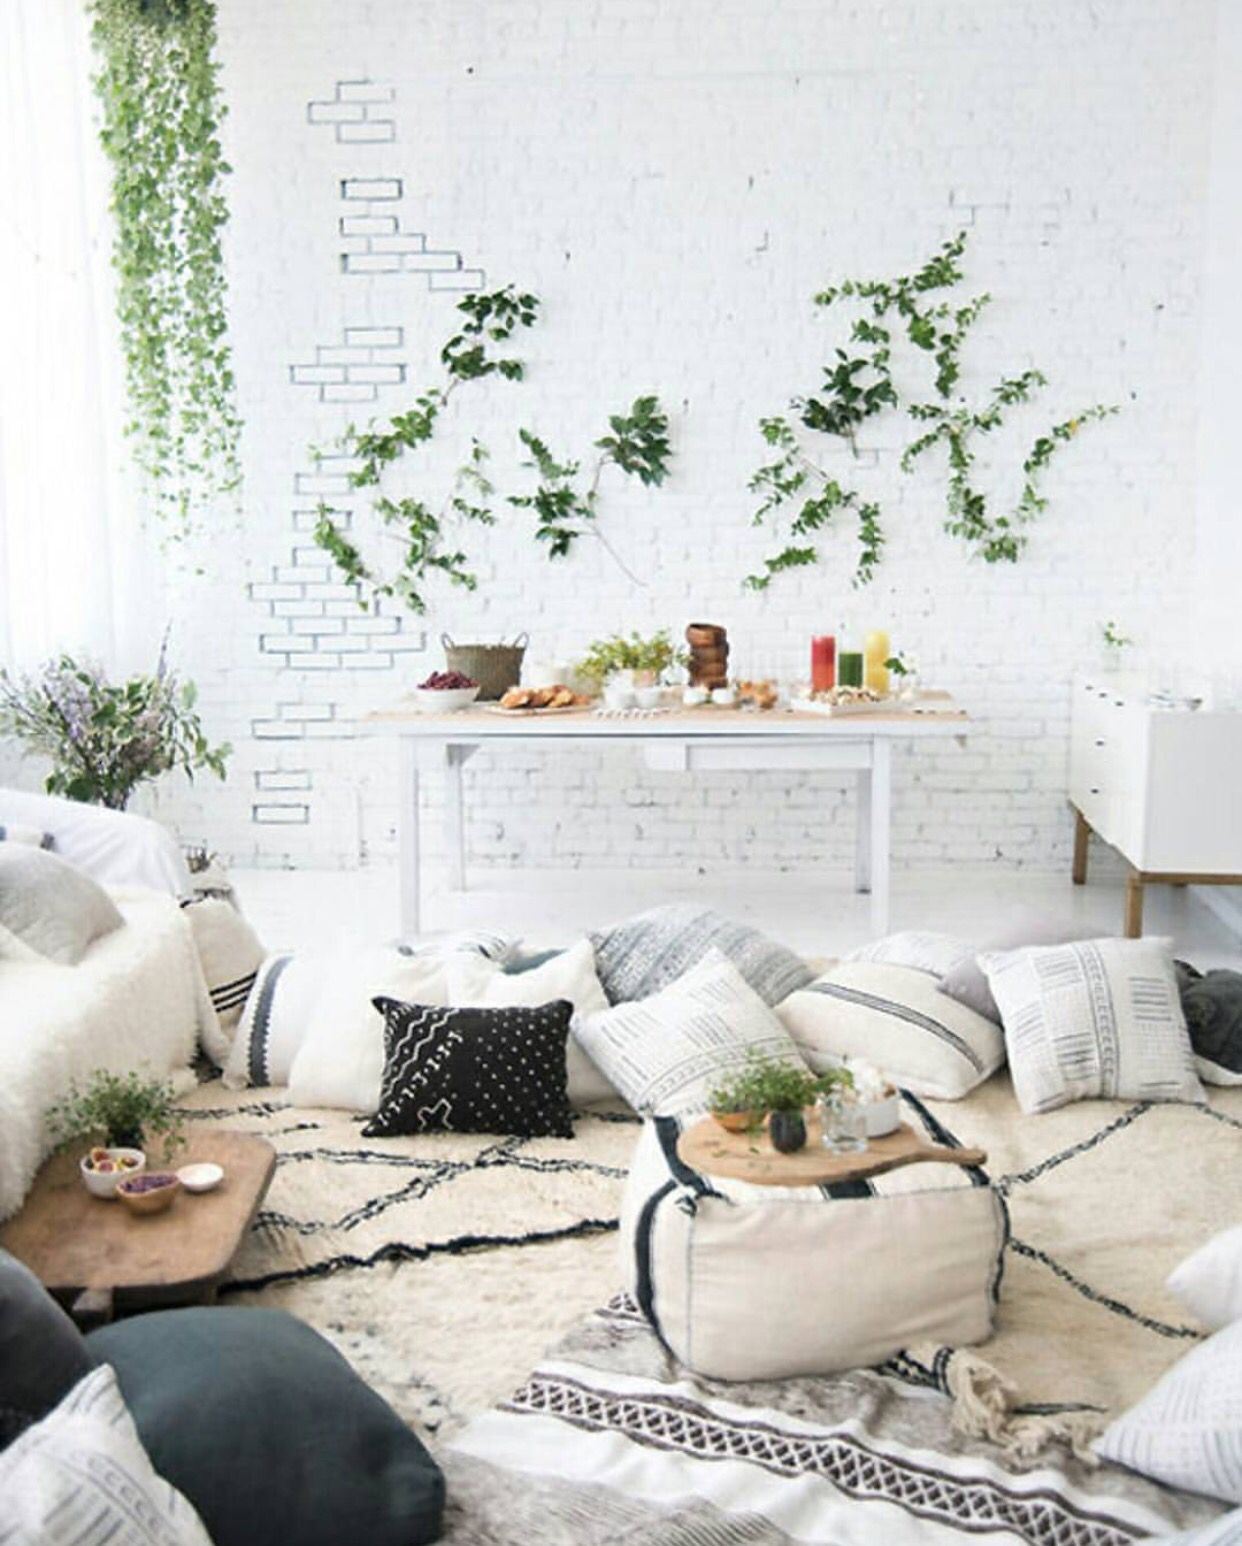 Pies al suelo | Fantasy Home | Pinterest | Future house, Salons and ...